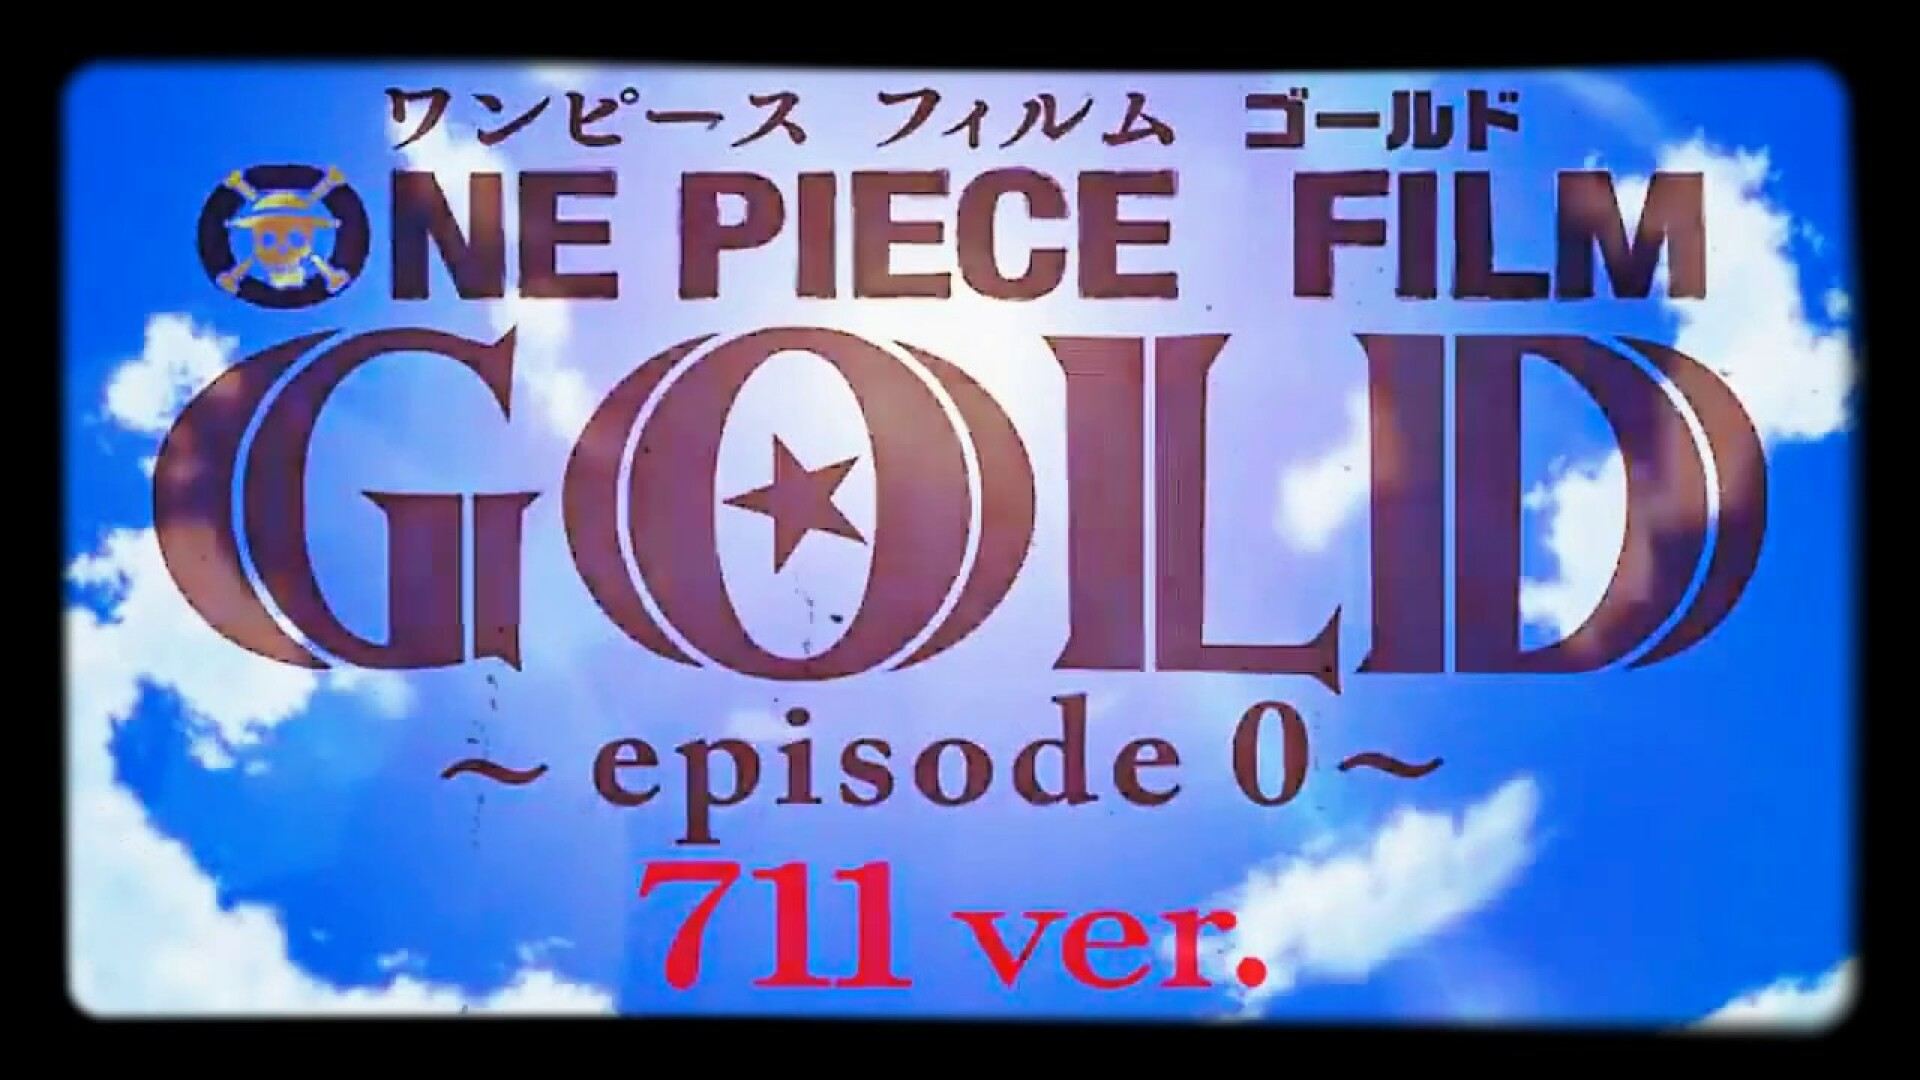 One-Piece Special : Gold 0-711 ver. (Partie 2/3) News background